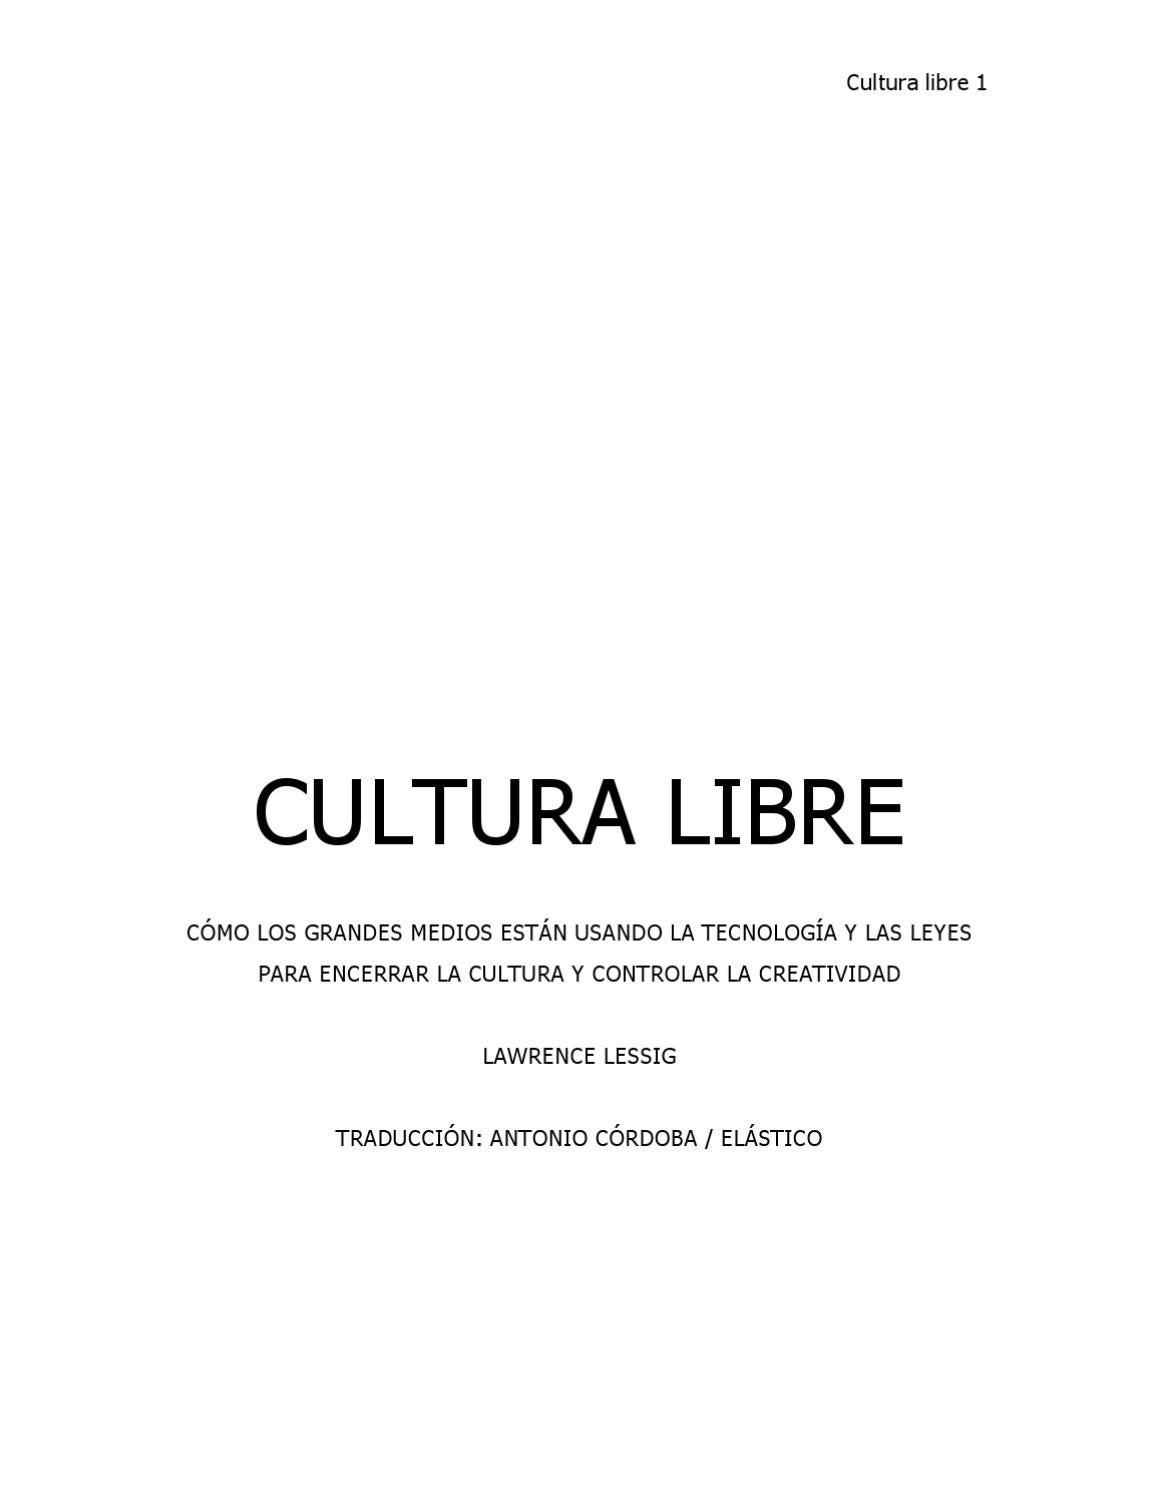 Cultura Libre by Kwell - issuu